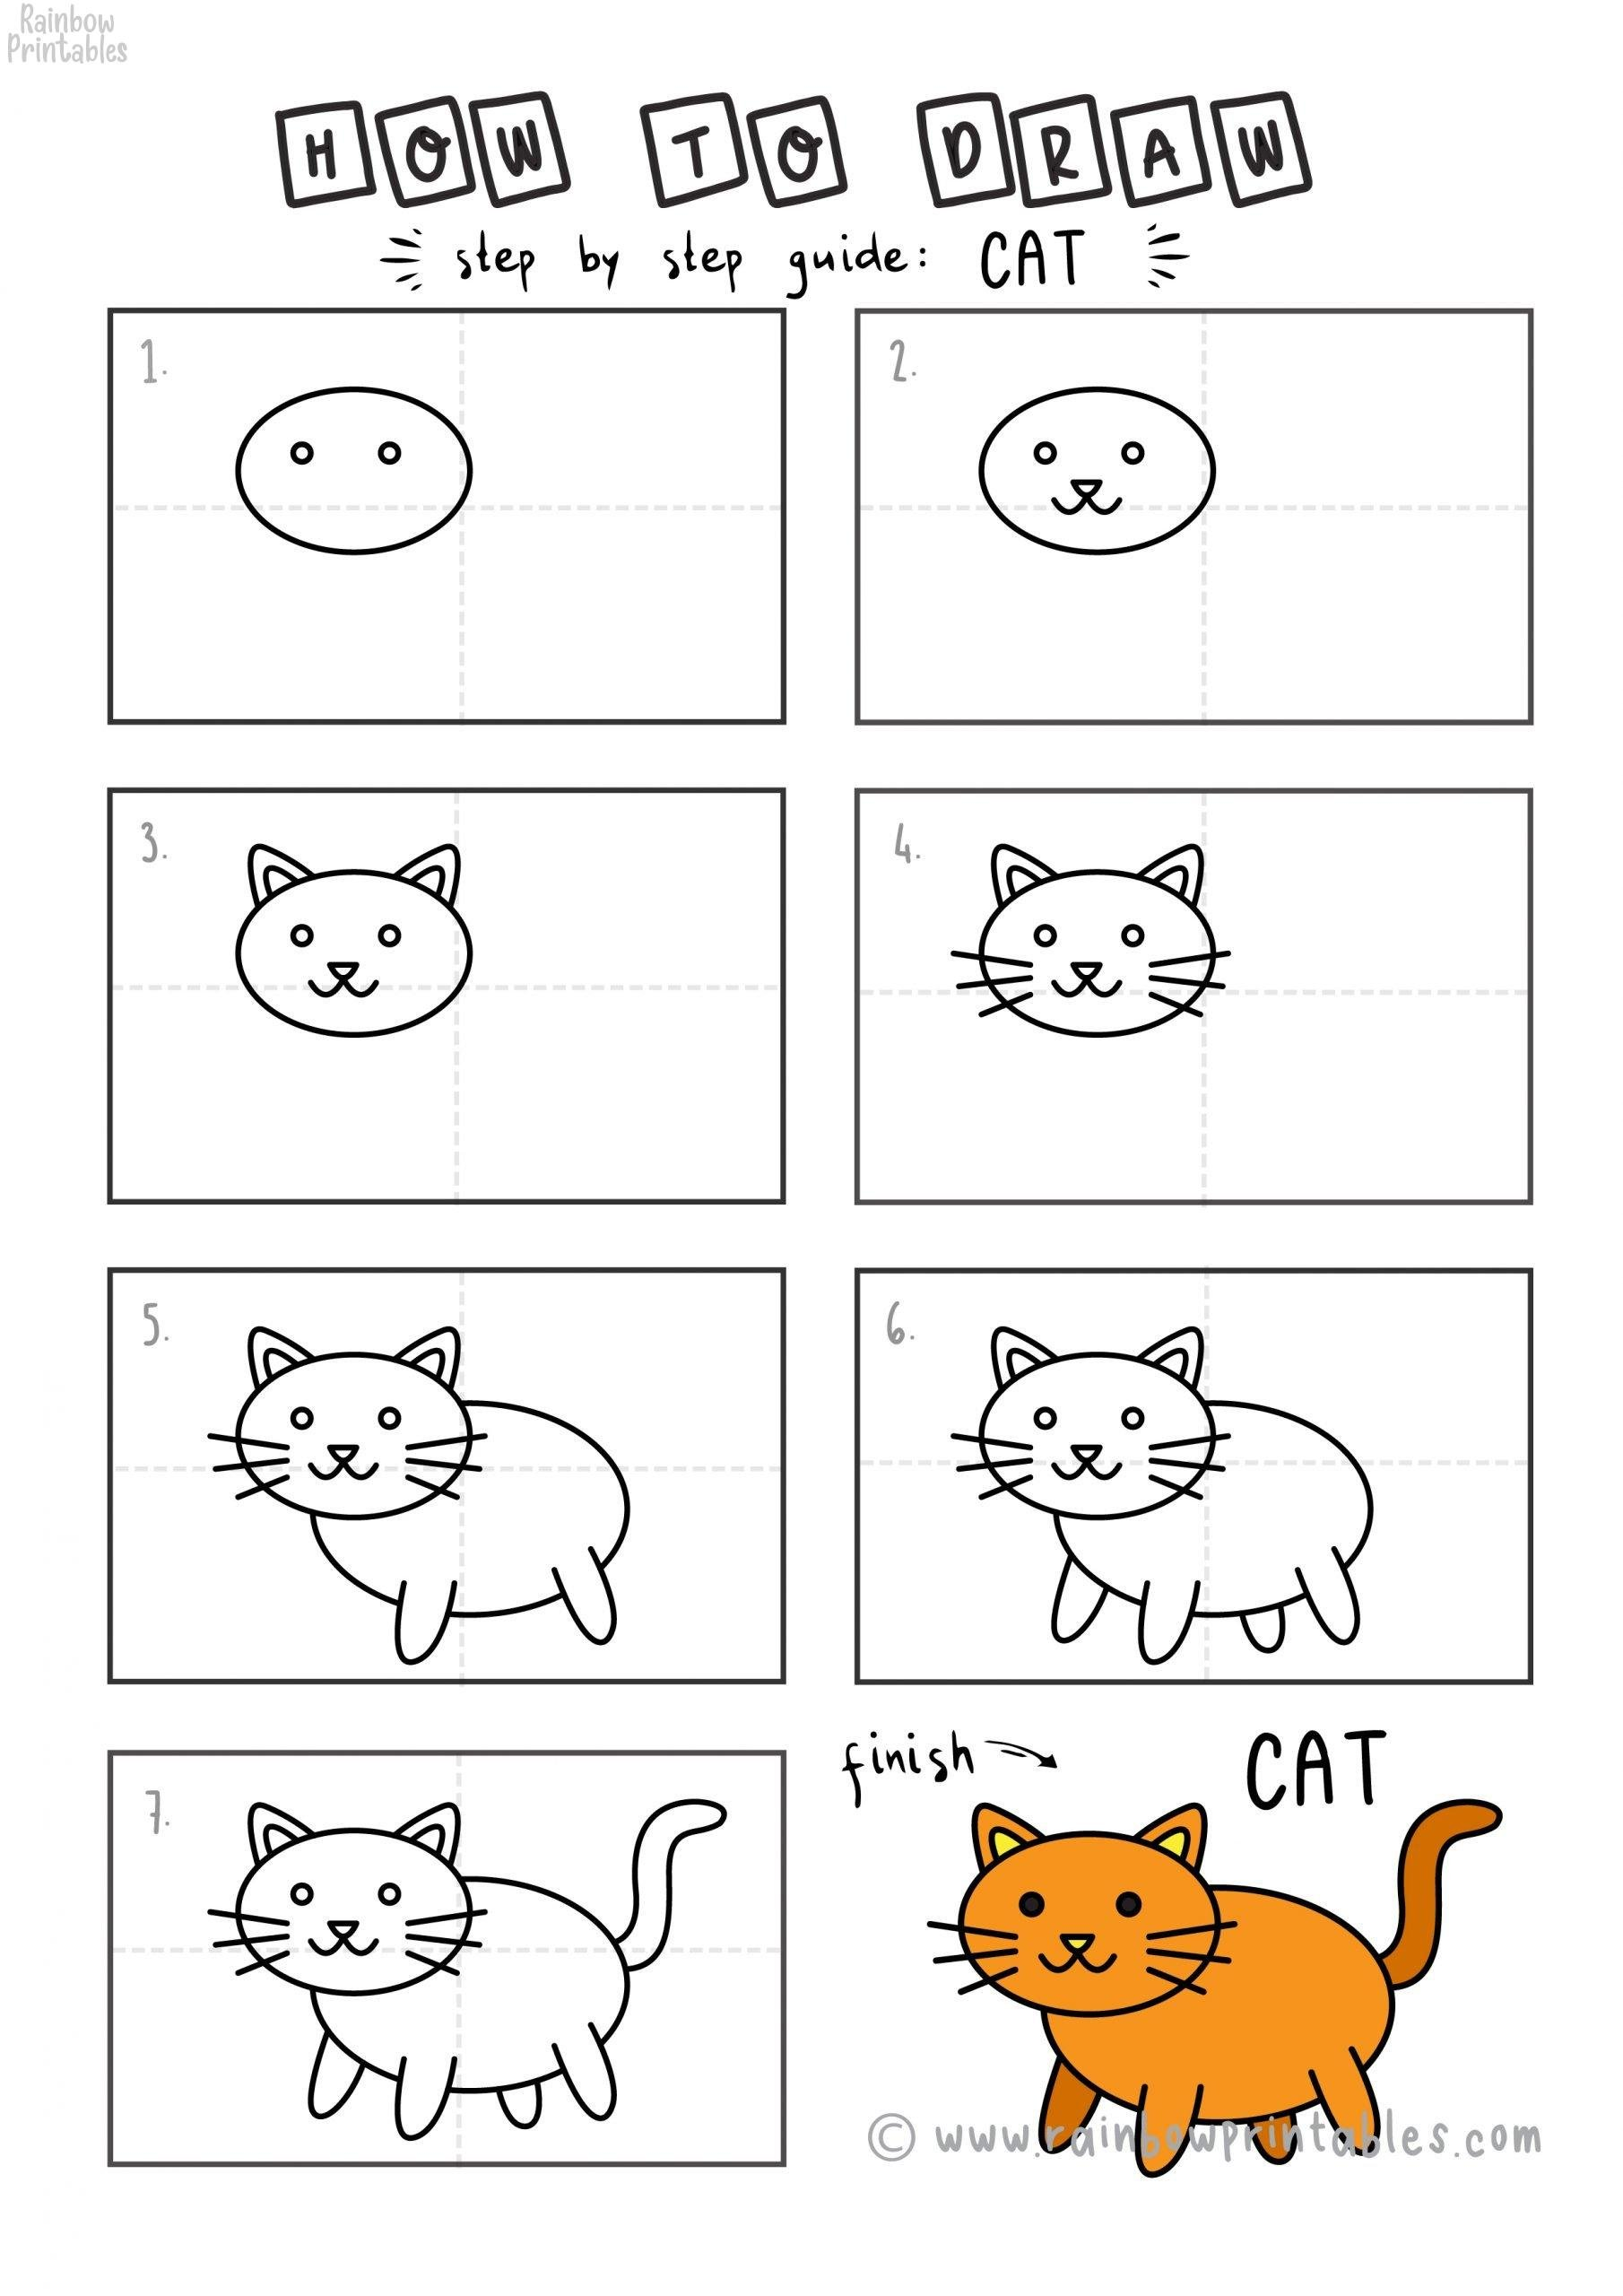 How To Draw A Very Easy Kitty Cat Simple 8 Step Guide For Kids Rainbow Printables It turns out the cats are very easy to draw while spending only 2 minutes with these easy cat drawing step by step tutorials. rainbow printables